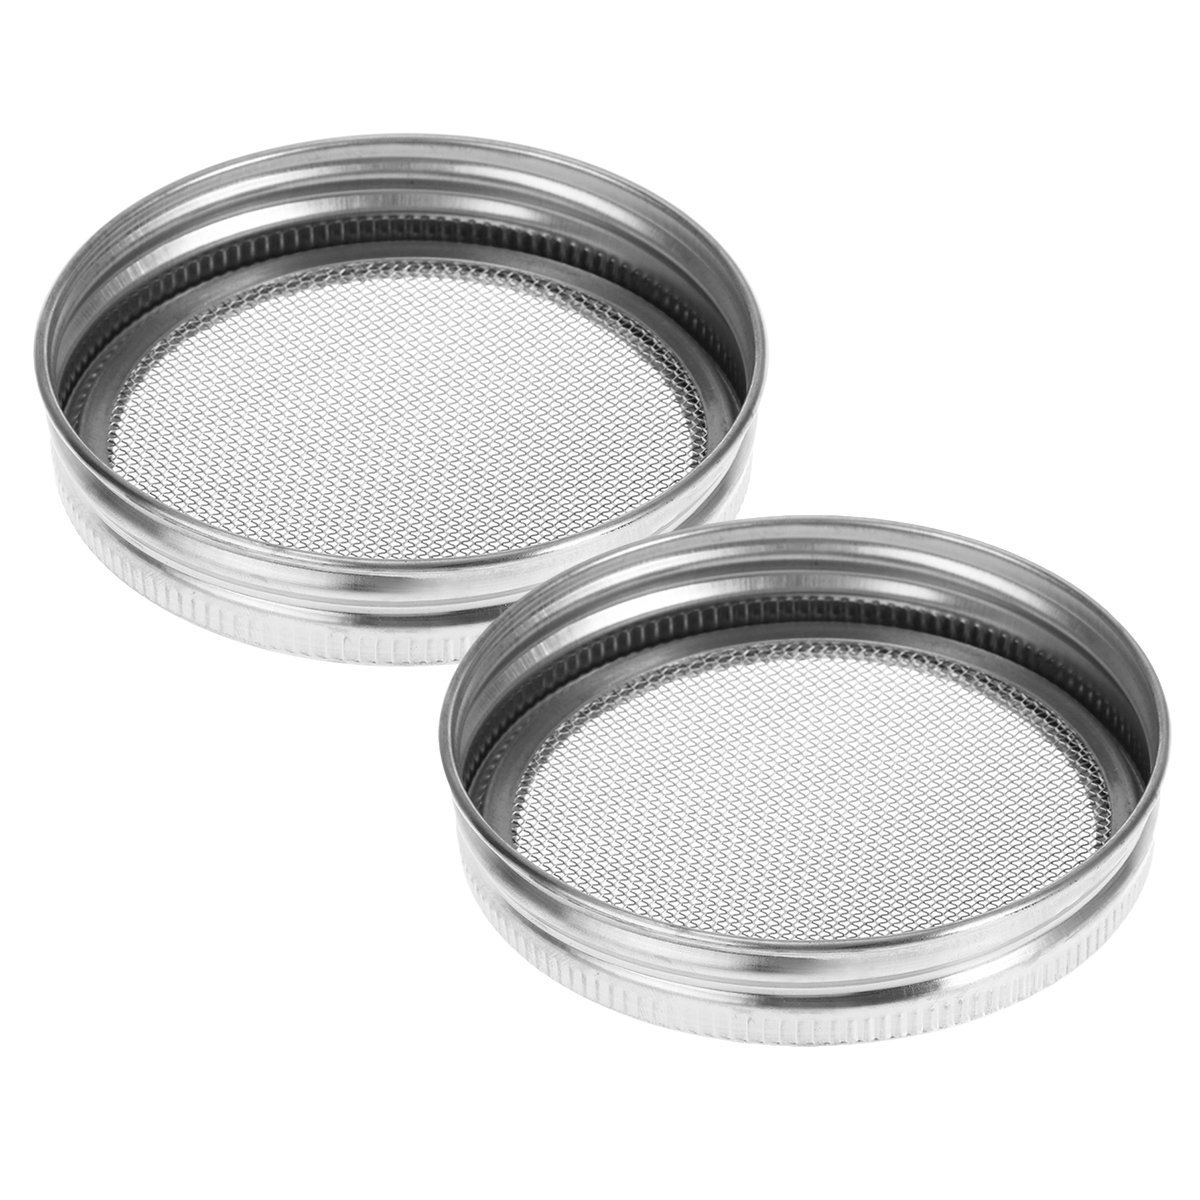 Besto Nzon 2-Pack Stainless Steel Sprouting Lid for Round Mouth Canning Jars and Seeds Screen (Silver) BESTONZON